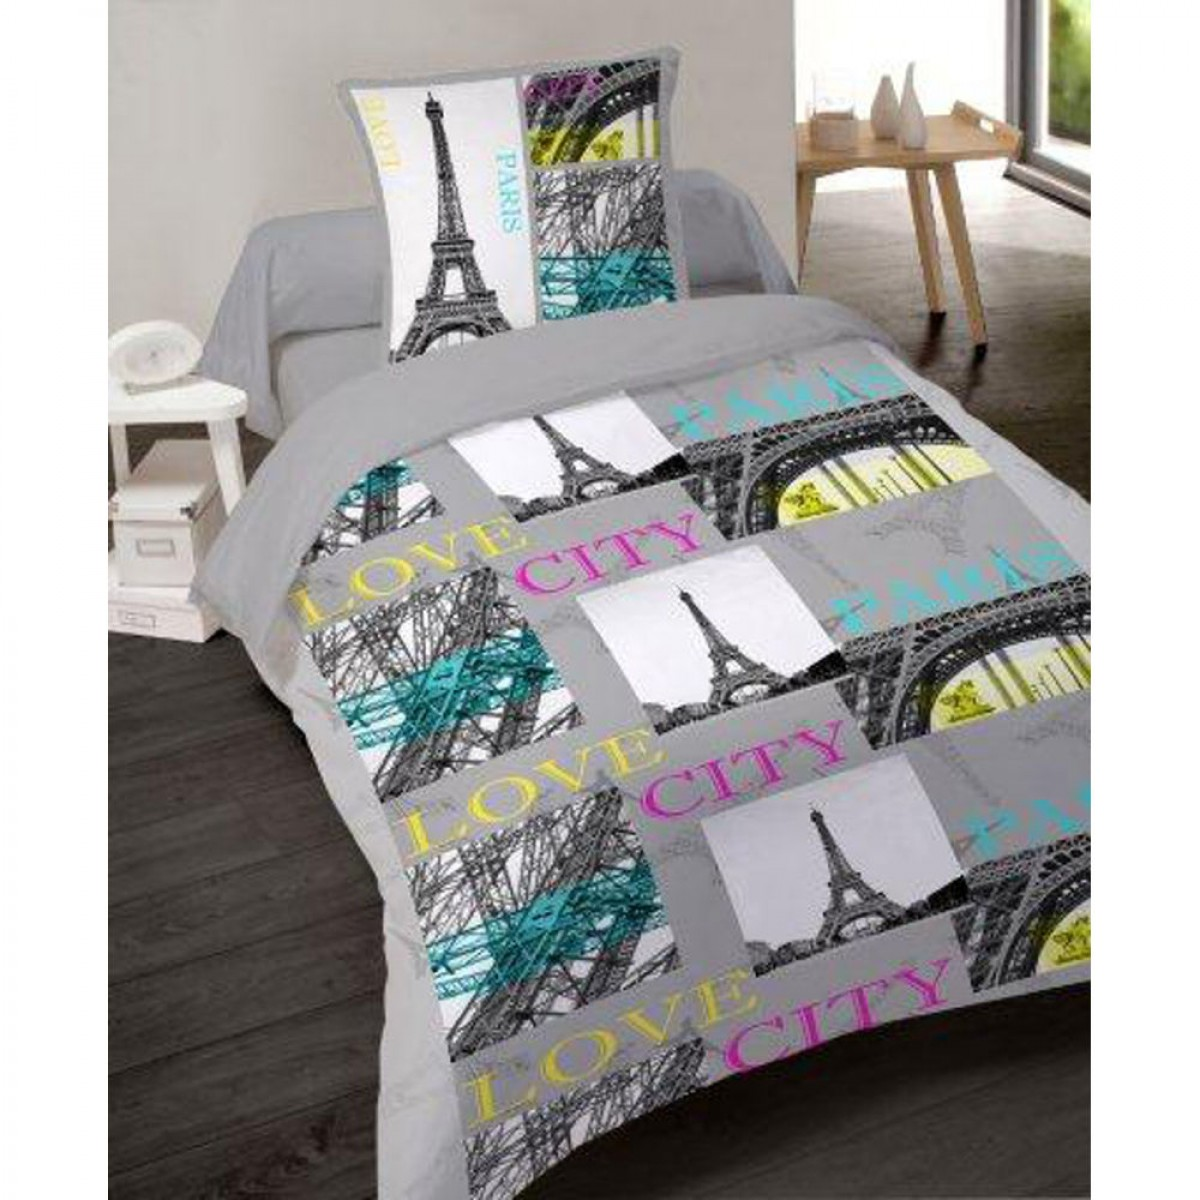 Housse de couette paris city 140 200 cm 1 taie d for Housse de couette paris 1 place